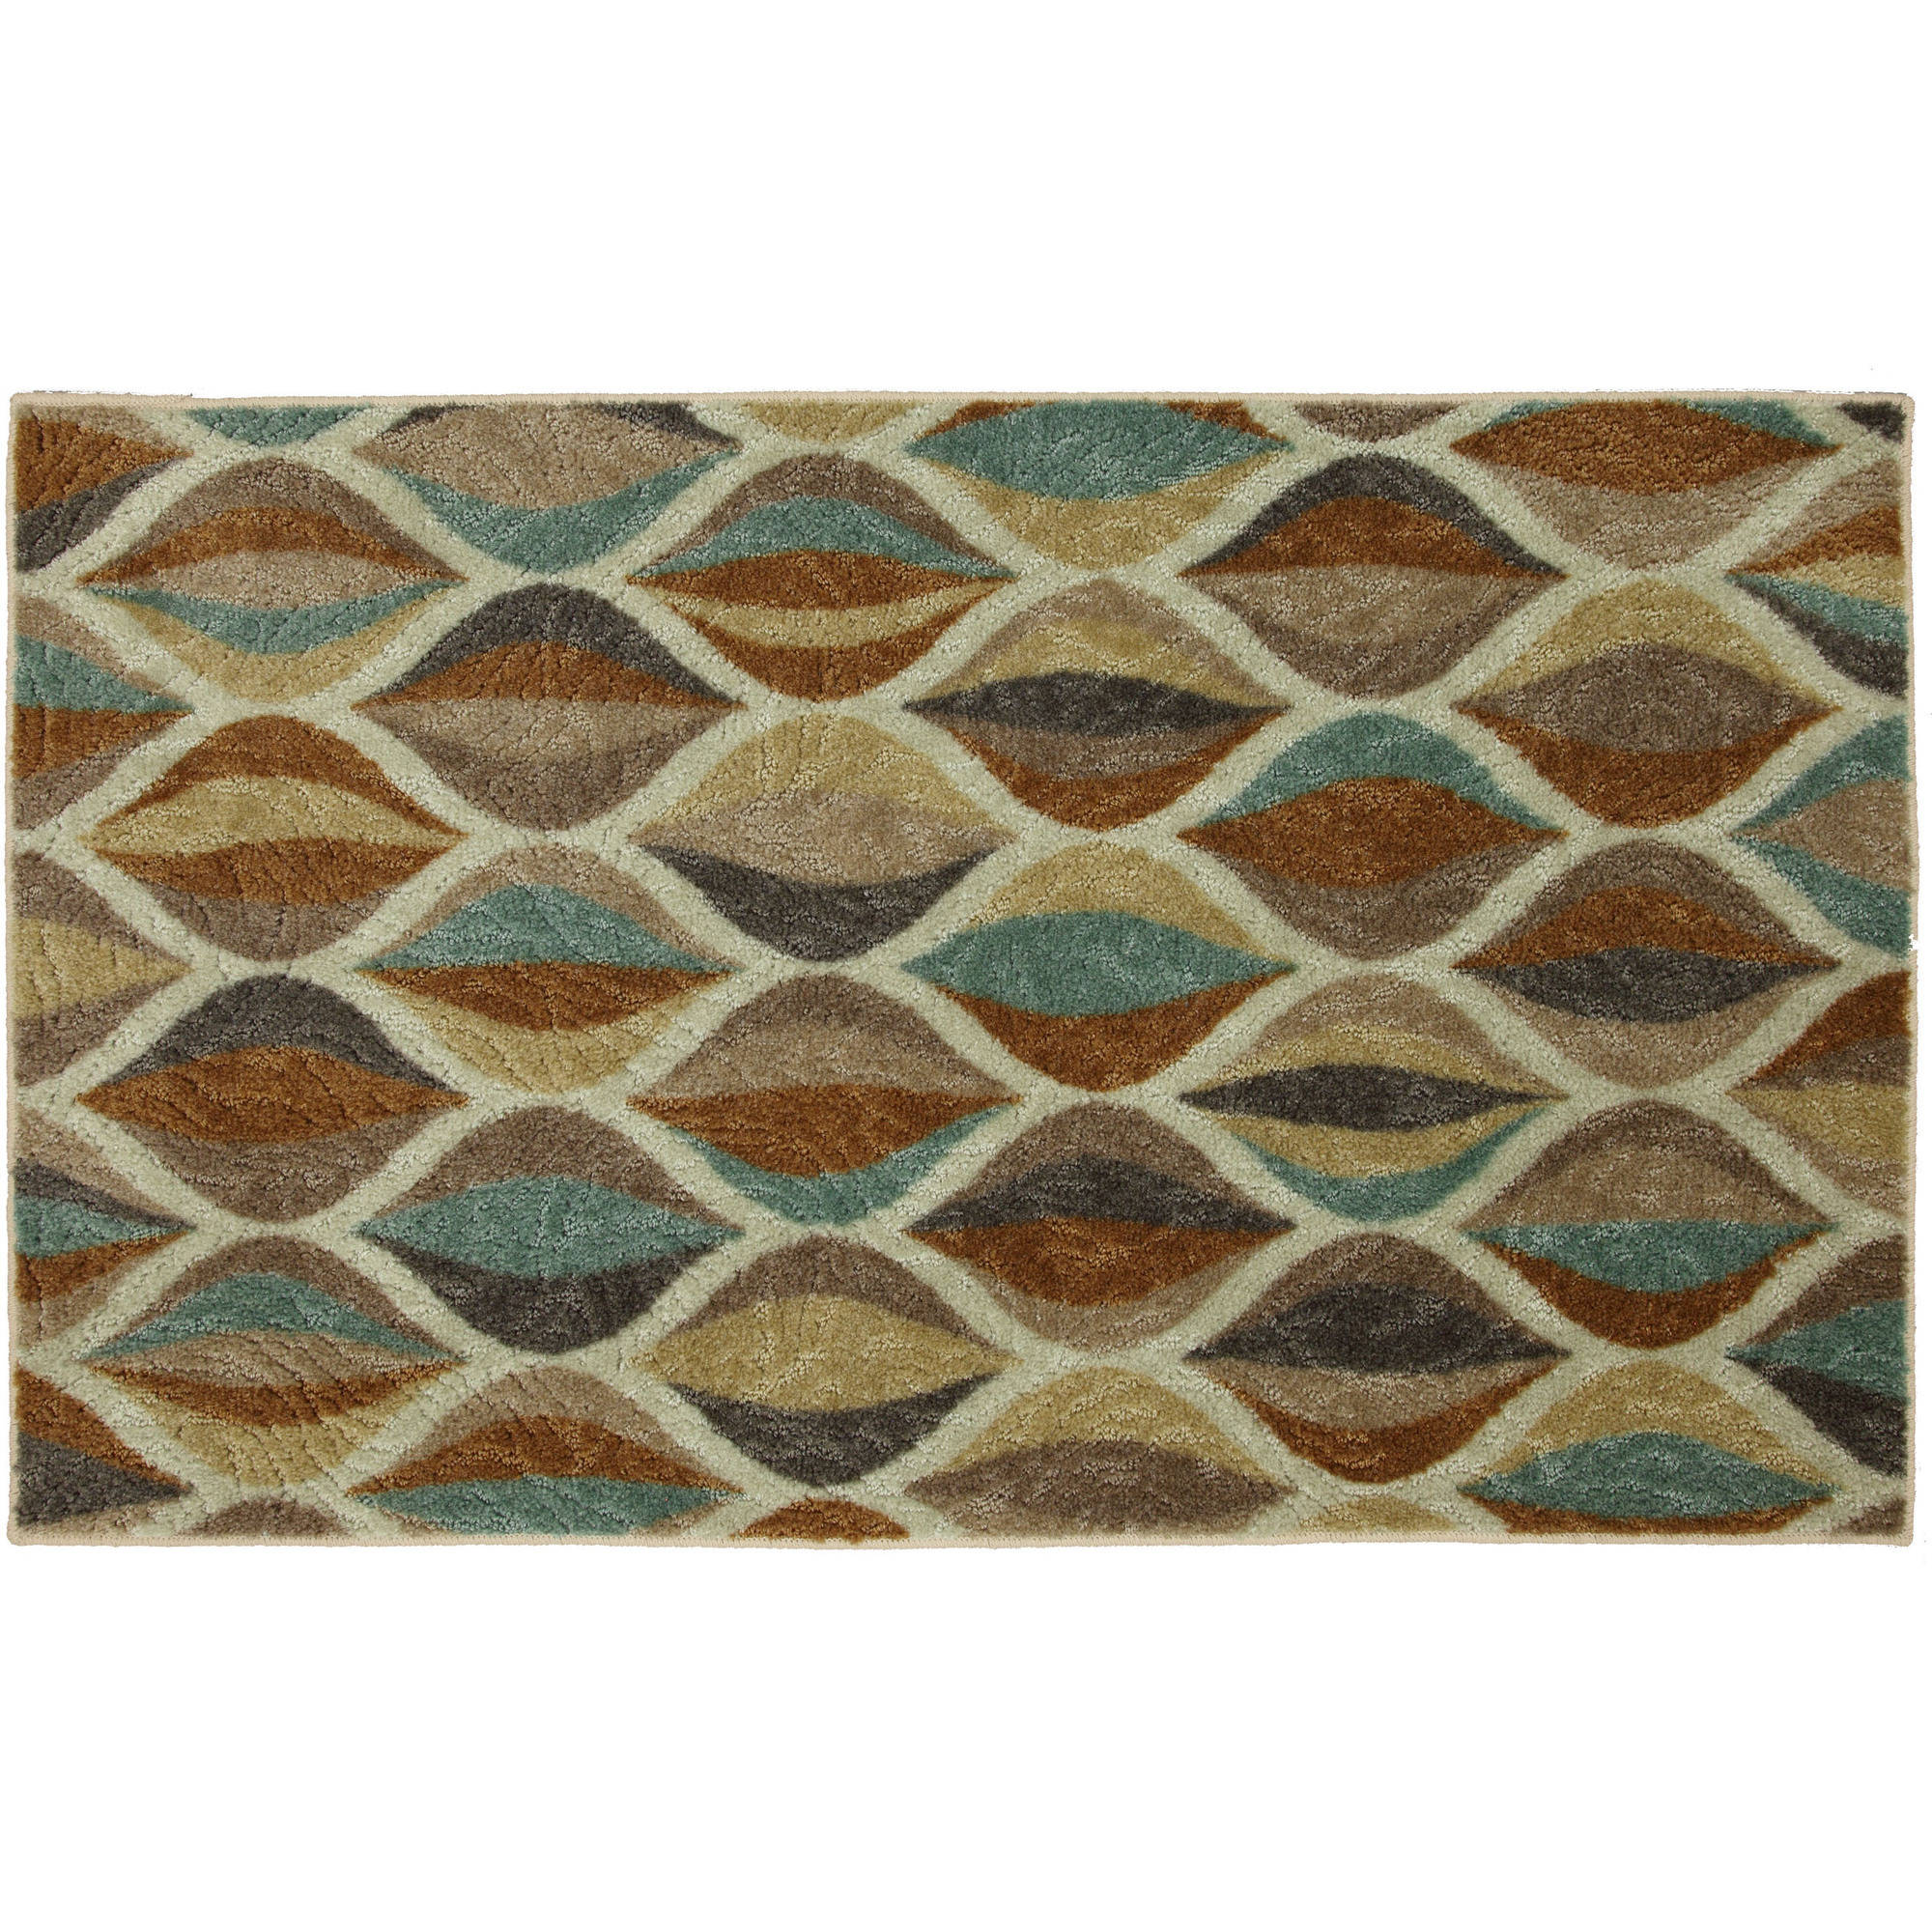 Mohawk Home Ornamental Ogee Nylon Scatter Rug with Memory Foam Backing, 3' x 4'